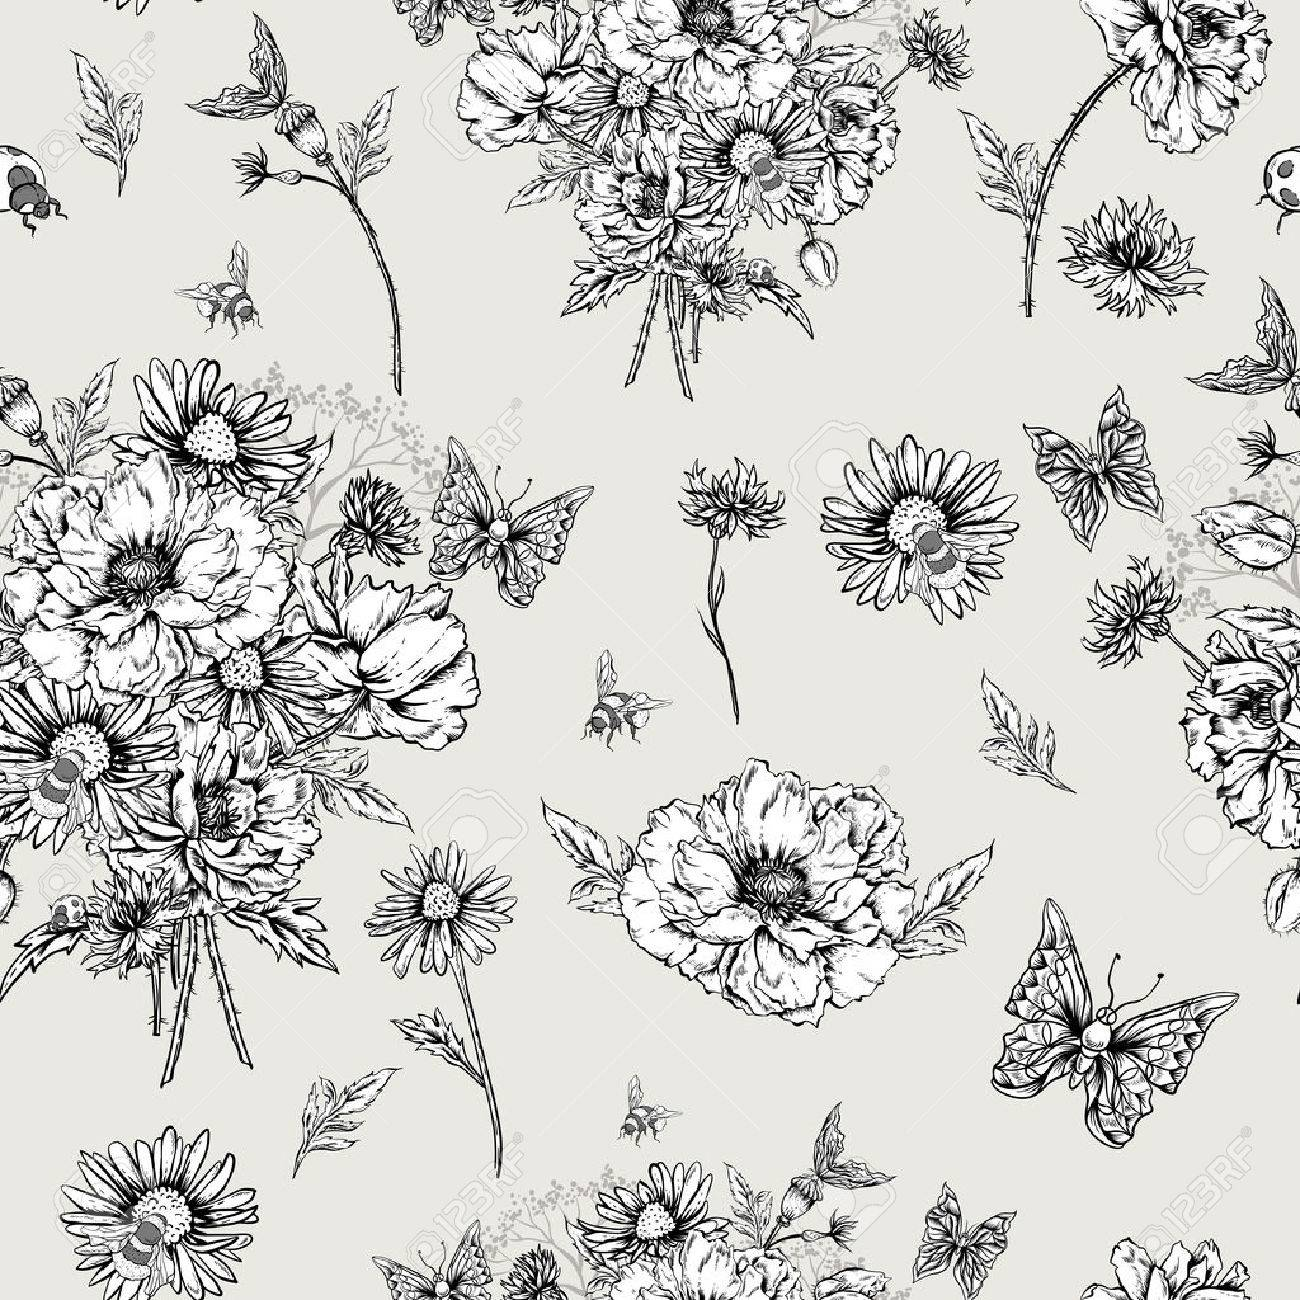 Summer Monochrome Vintage Floral Seamless Pattern With Blooming ...